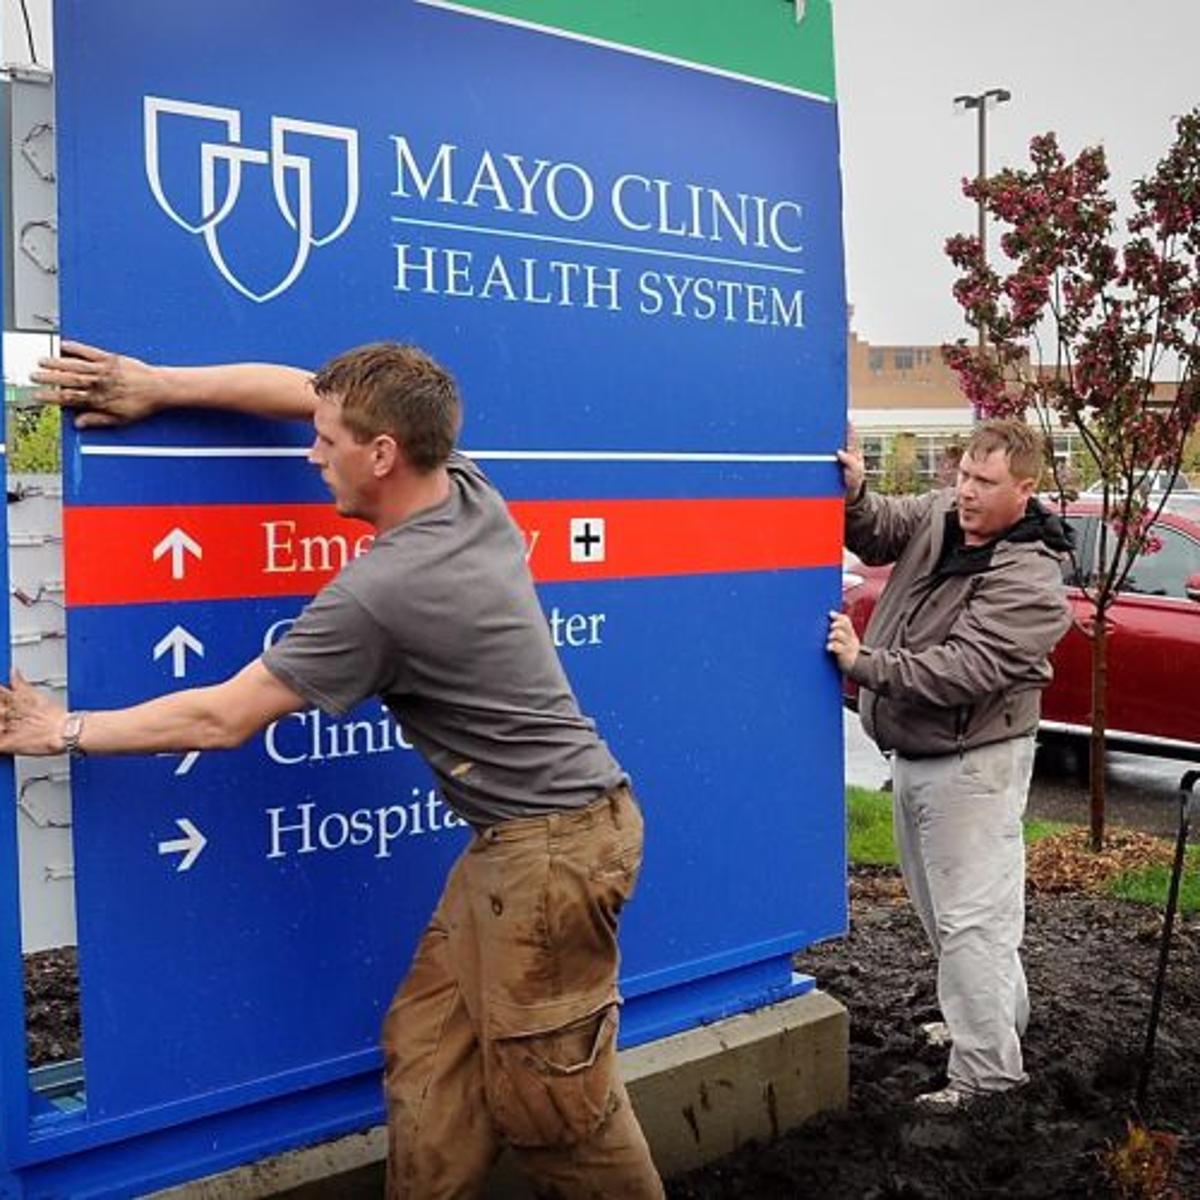 Mankato hospital gets dose of Mayo Clinic brand | Local News